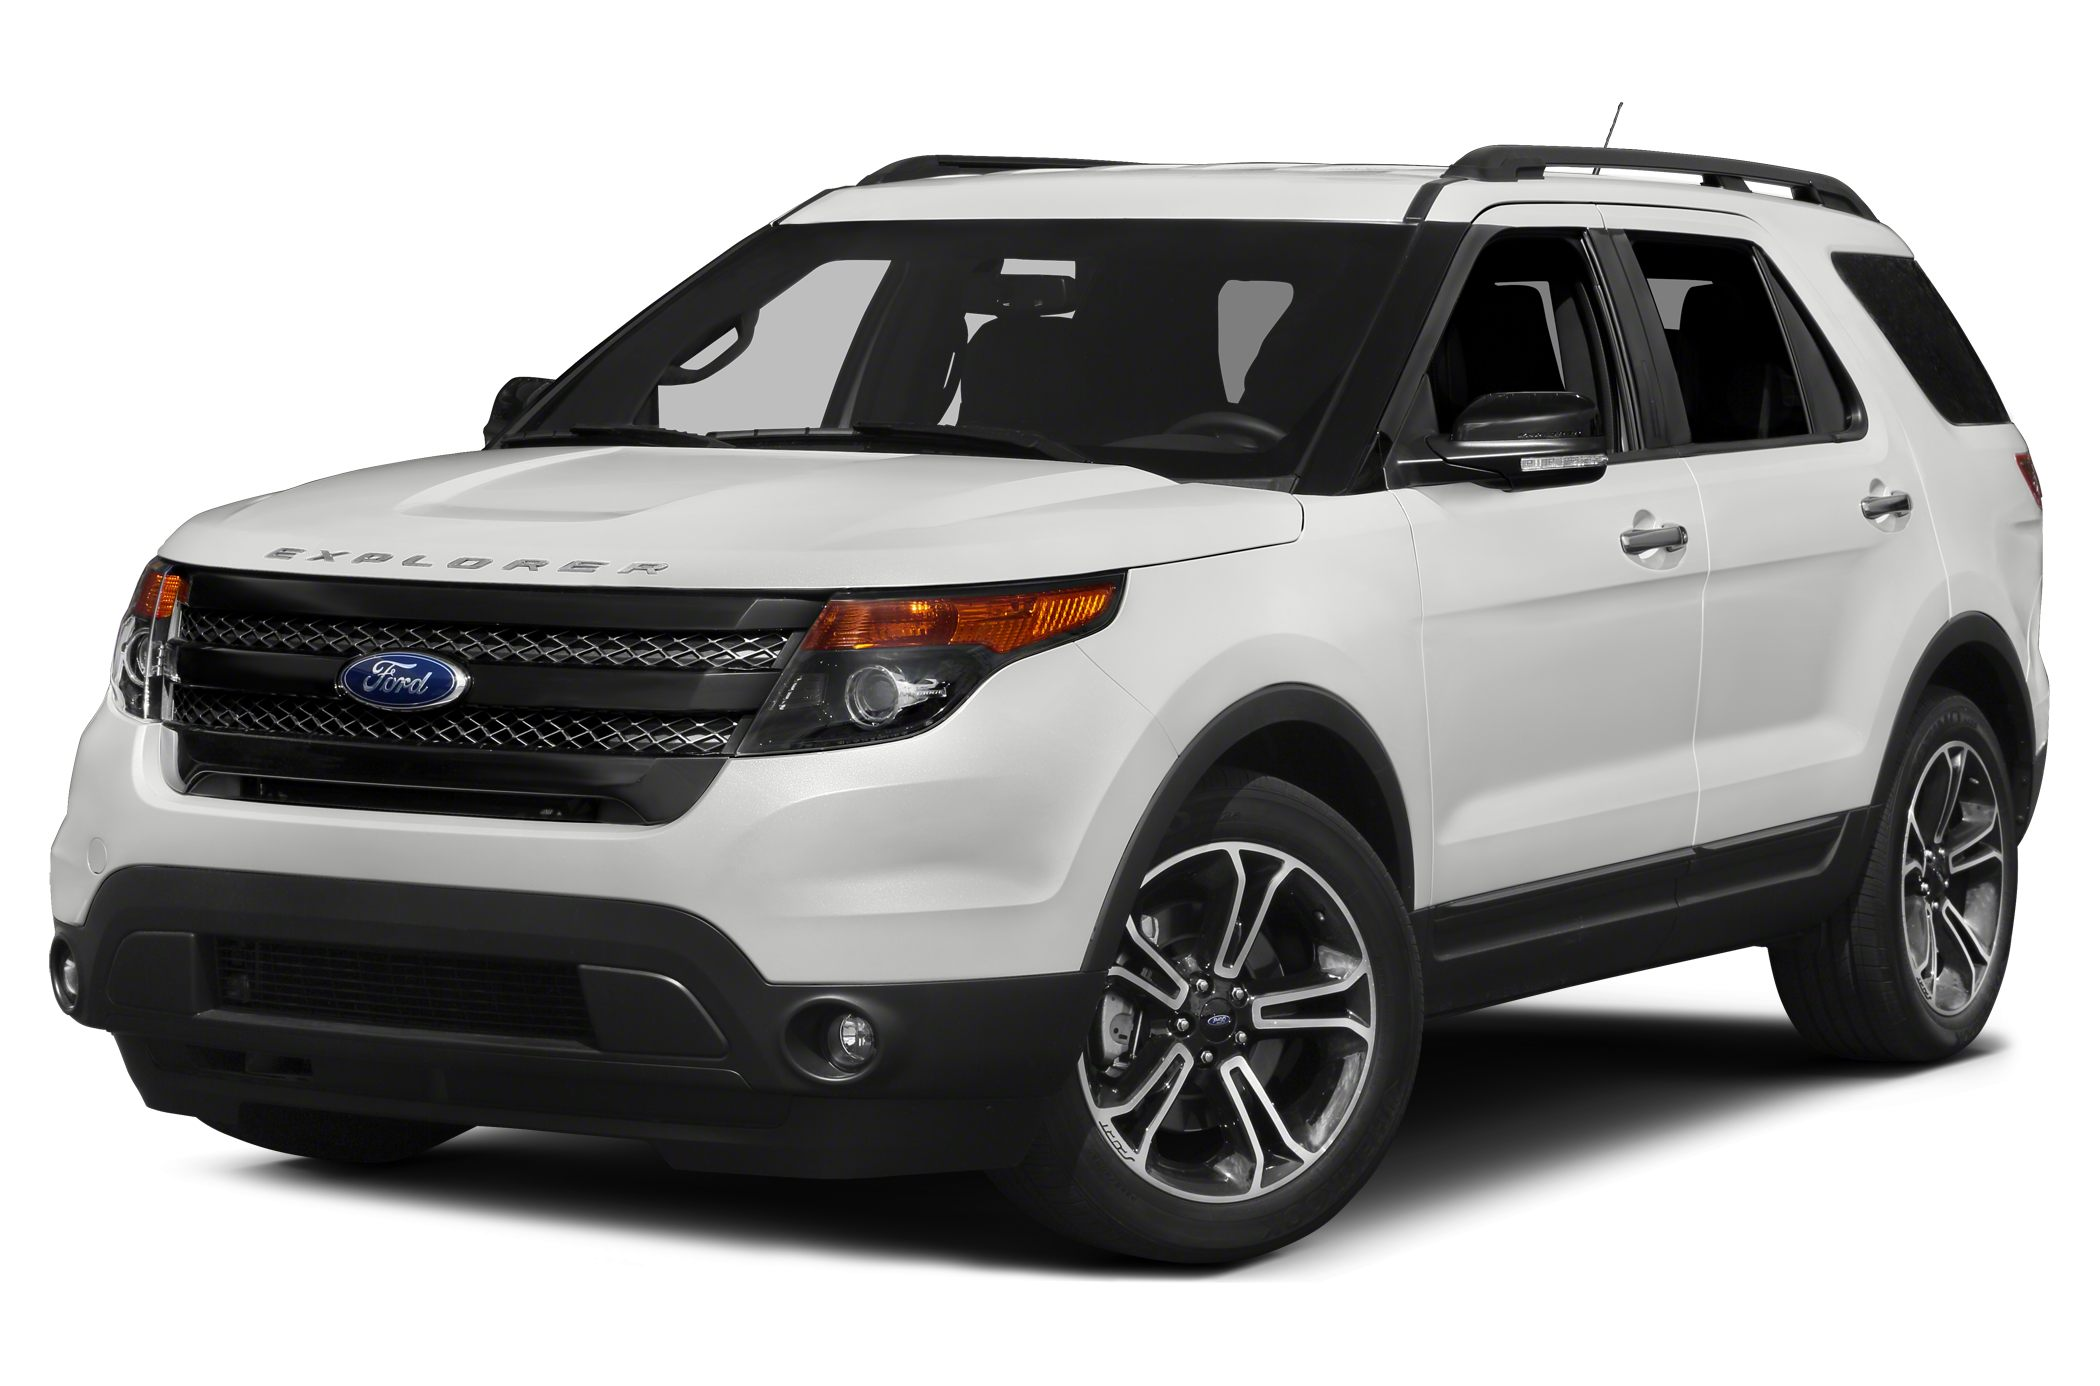 2015 Ford Explorer Sport SUV for sale in Waukesha for $50,585 with 12 miles.